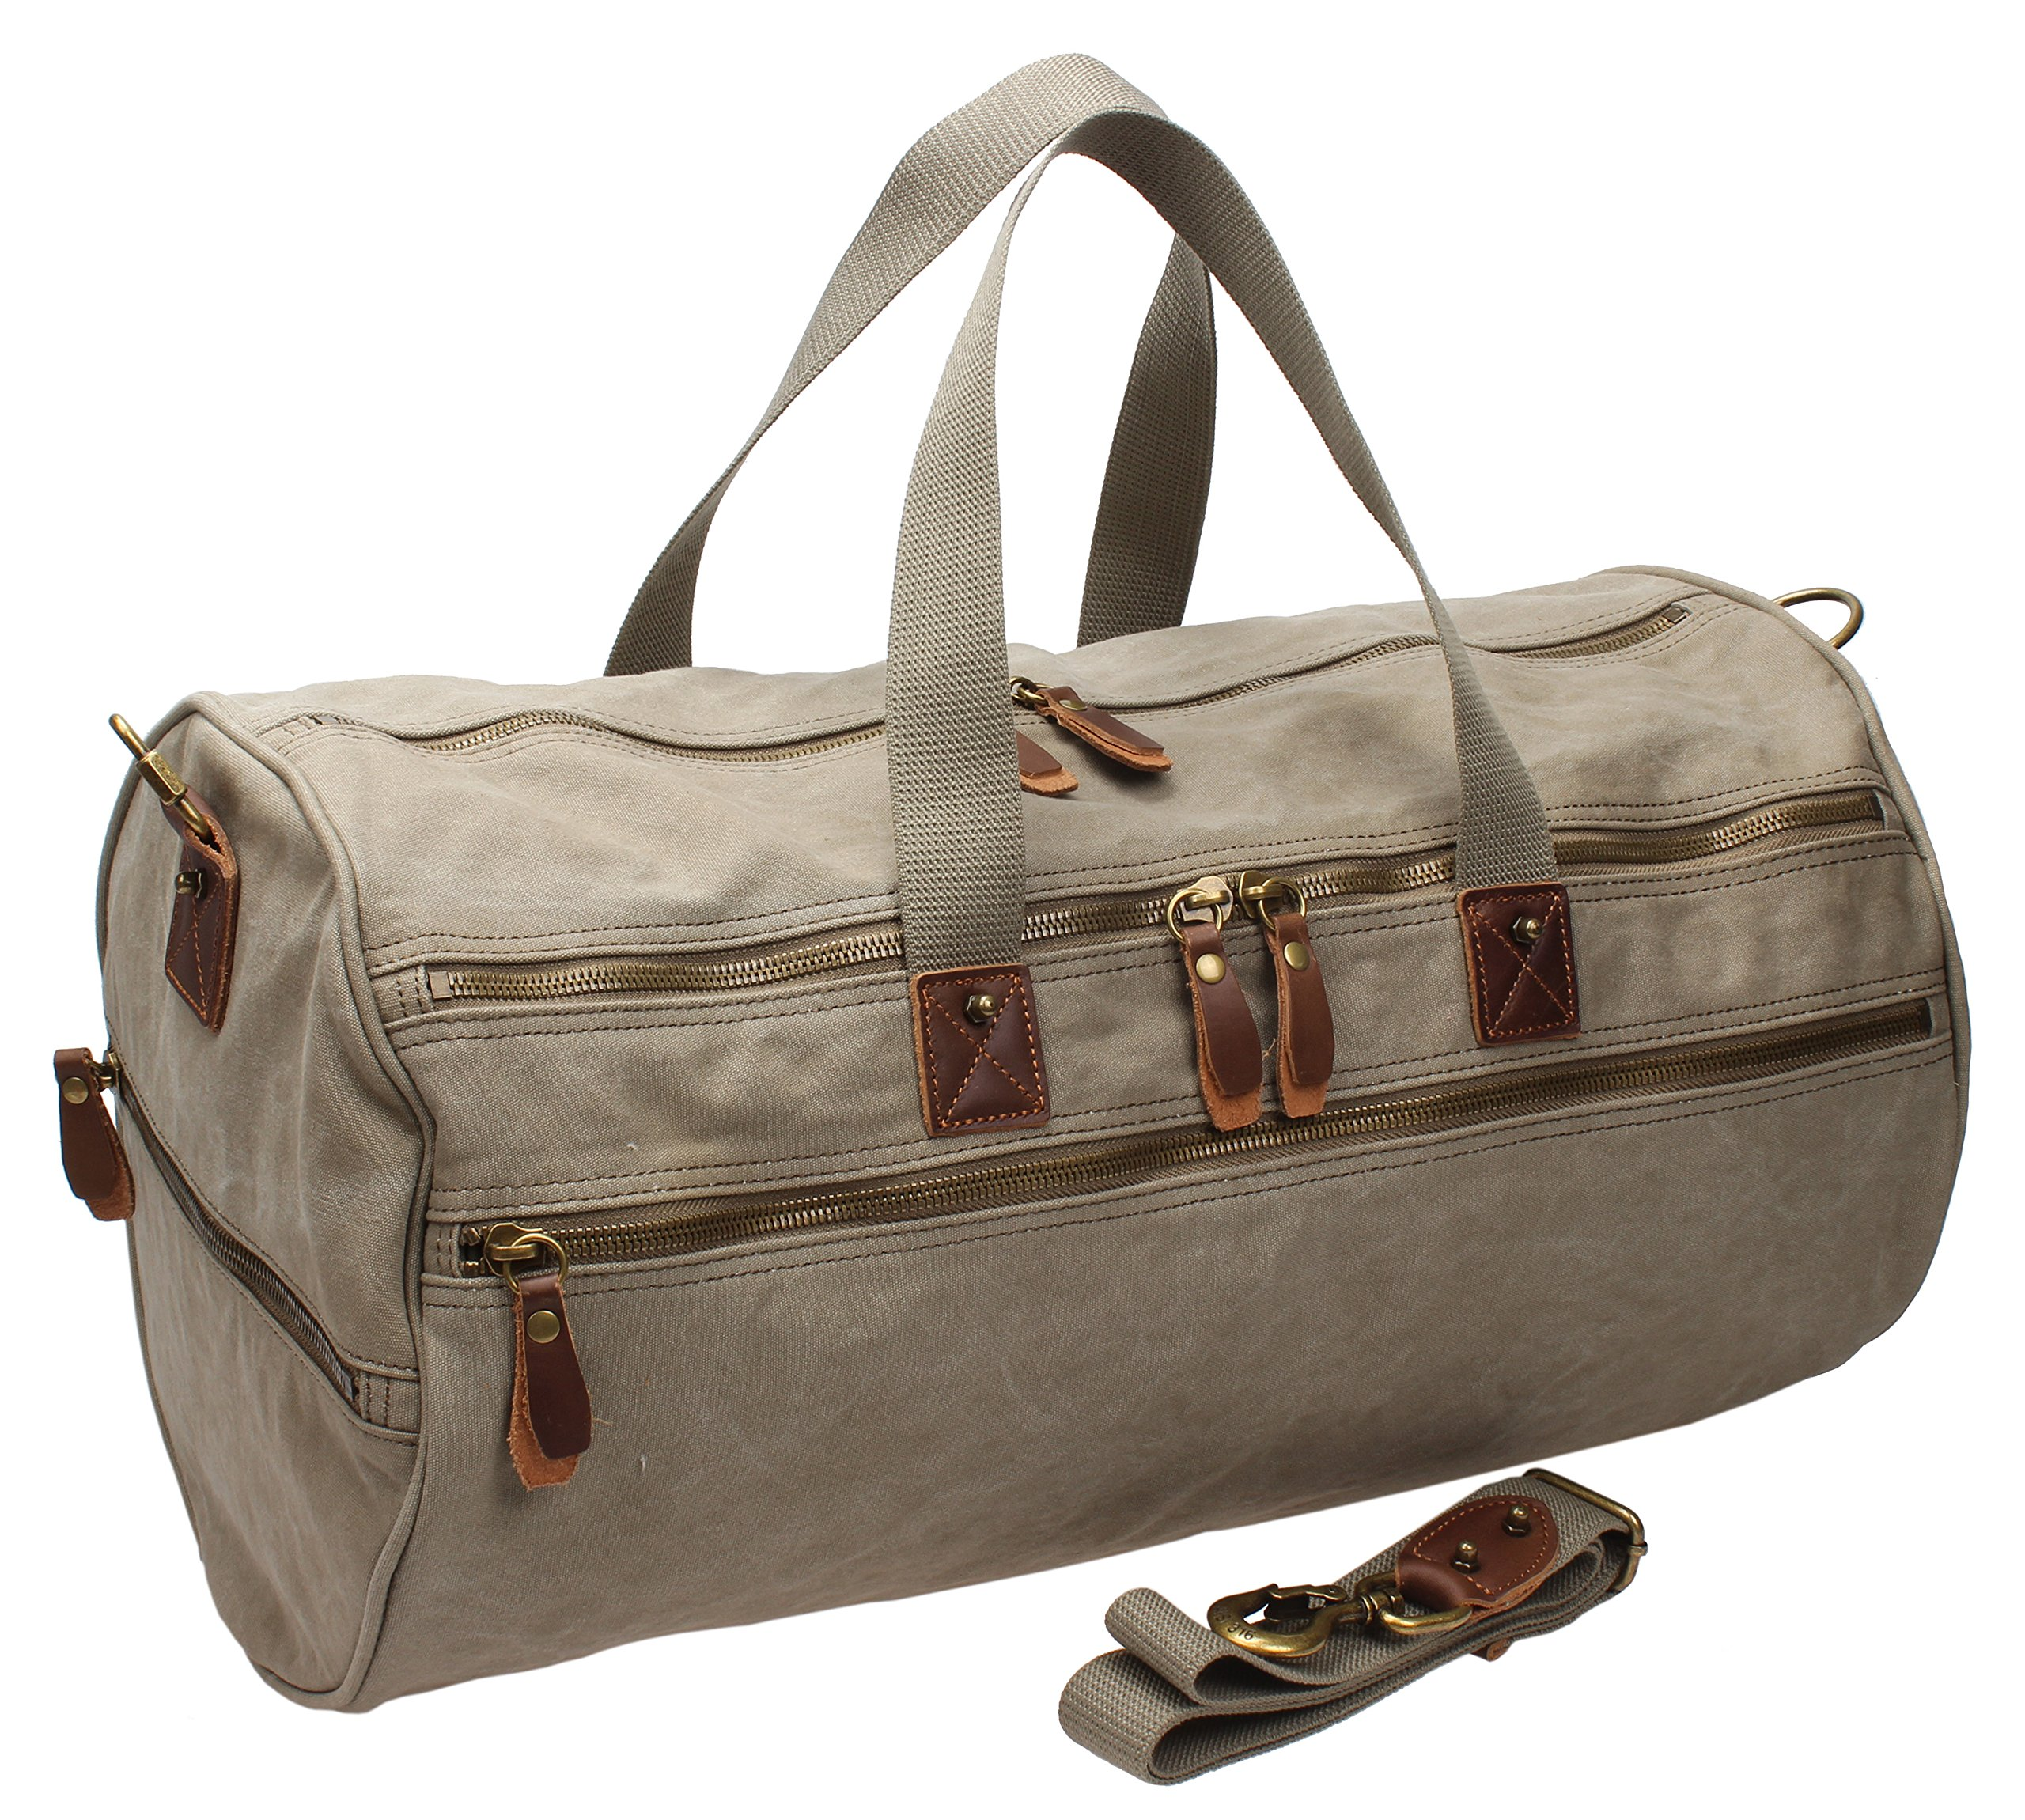 Men Canvas Weekender Overnight Bag Travel Duffle Gym Tote A740 (Army Green) by MSG (Image #2)